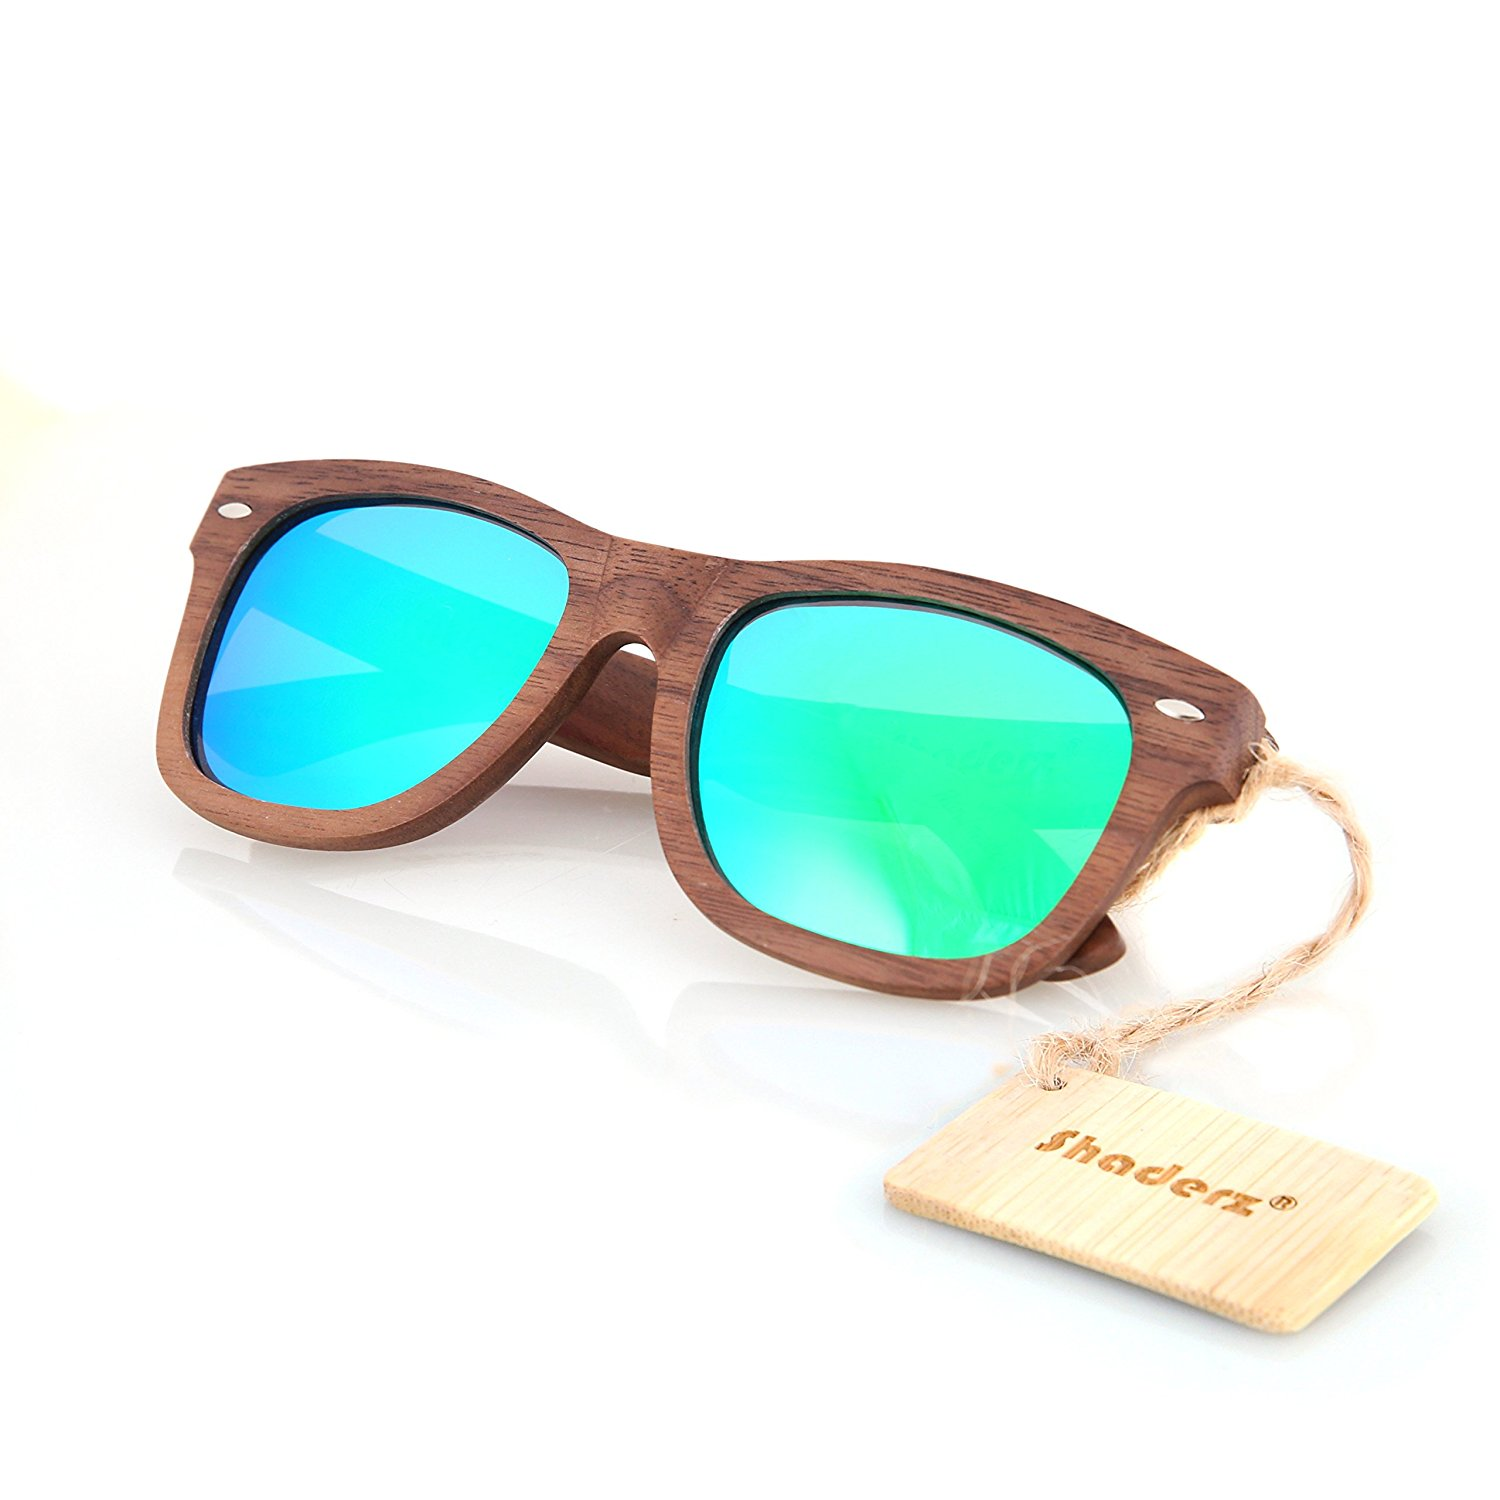 817eb67af5b Get Quotations · Walnut Wood Wooden Polarized Sunglasses Natural Floating  Light Frames W Pouch